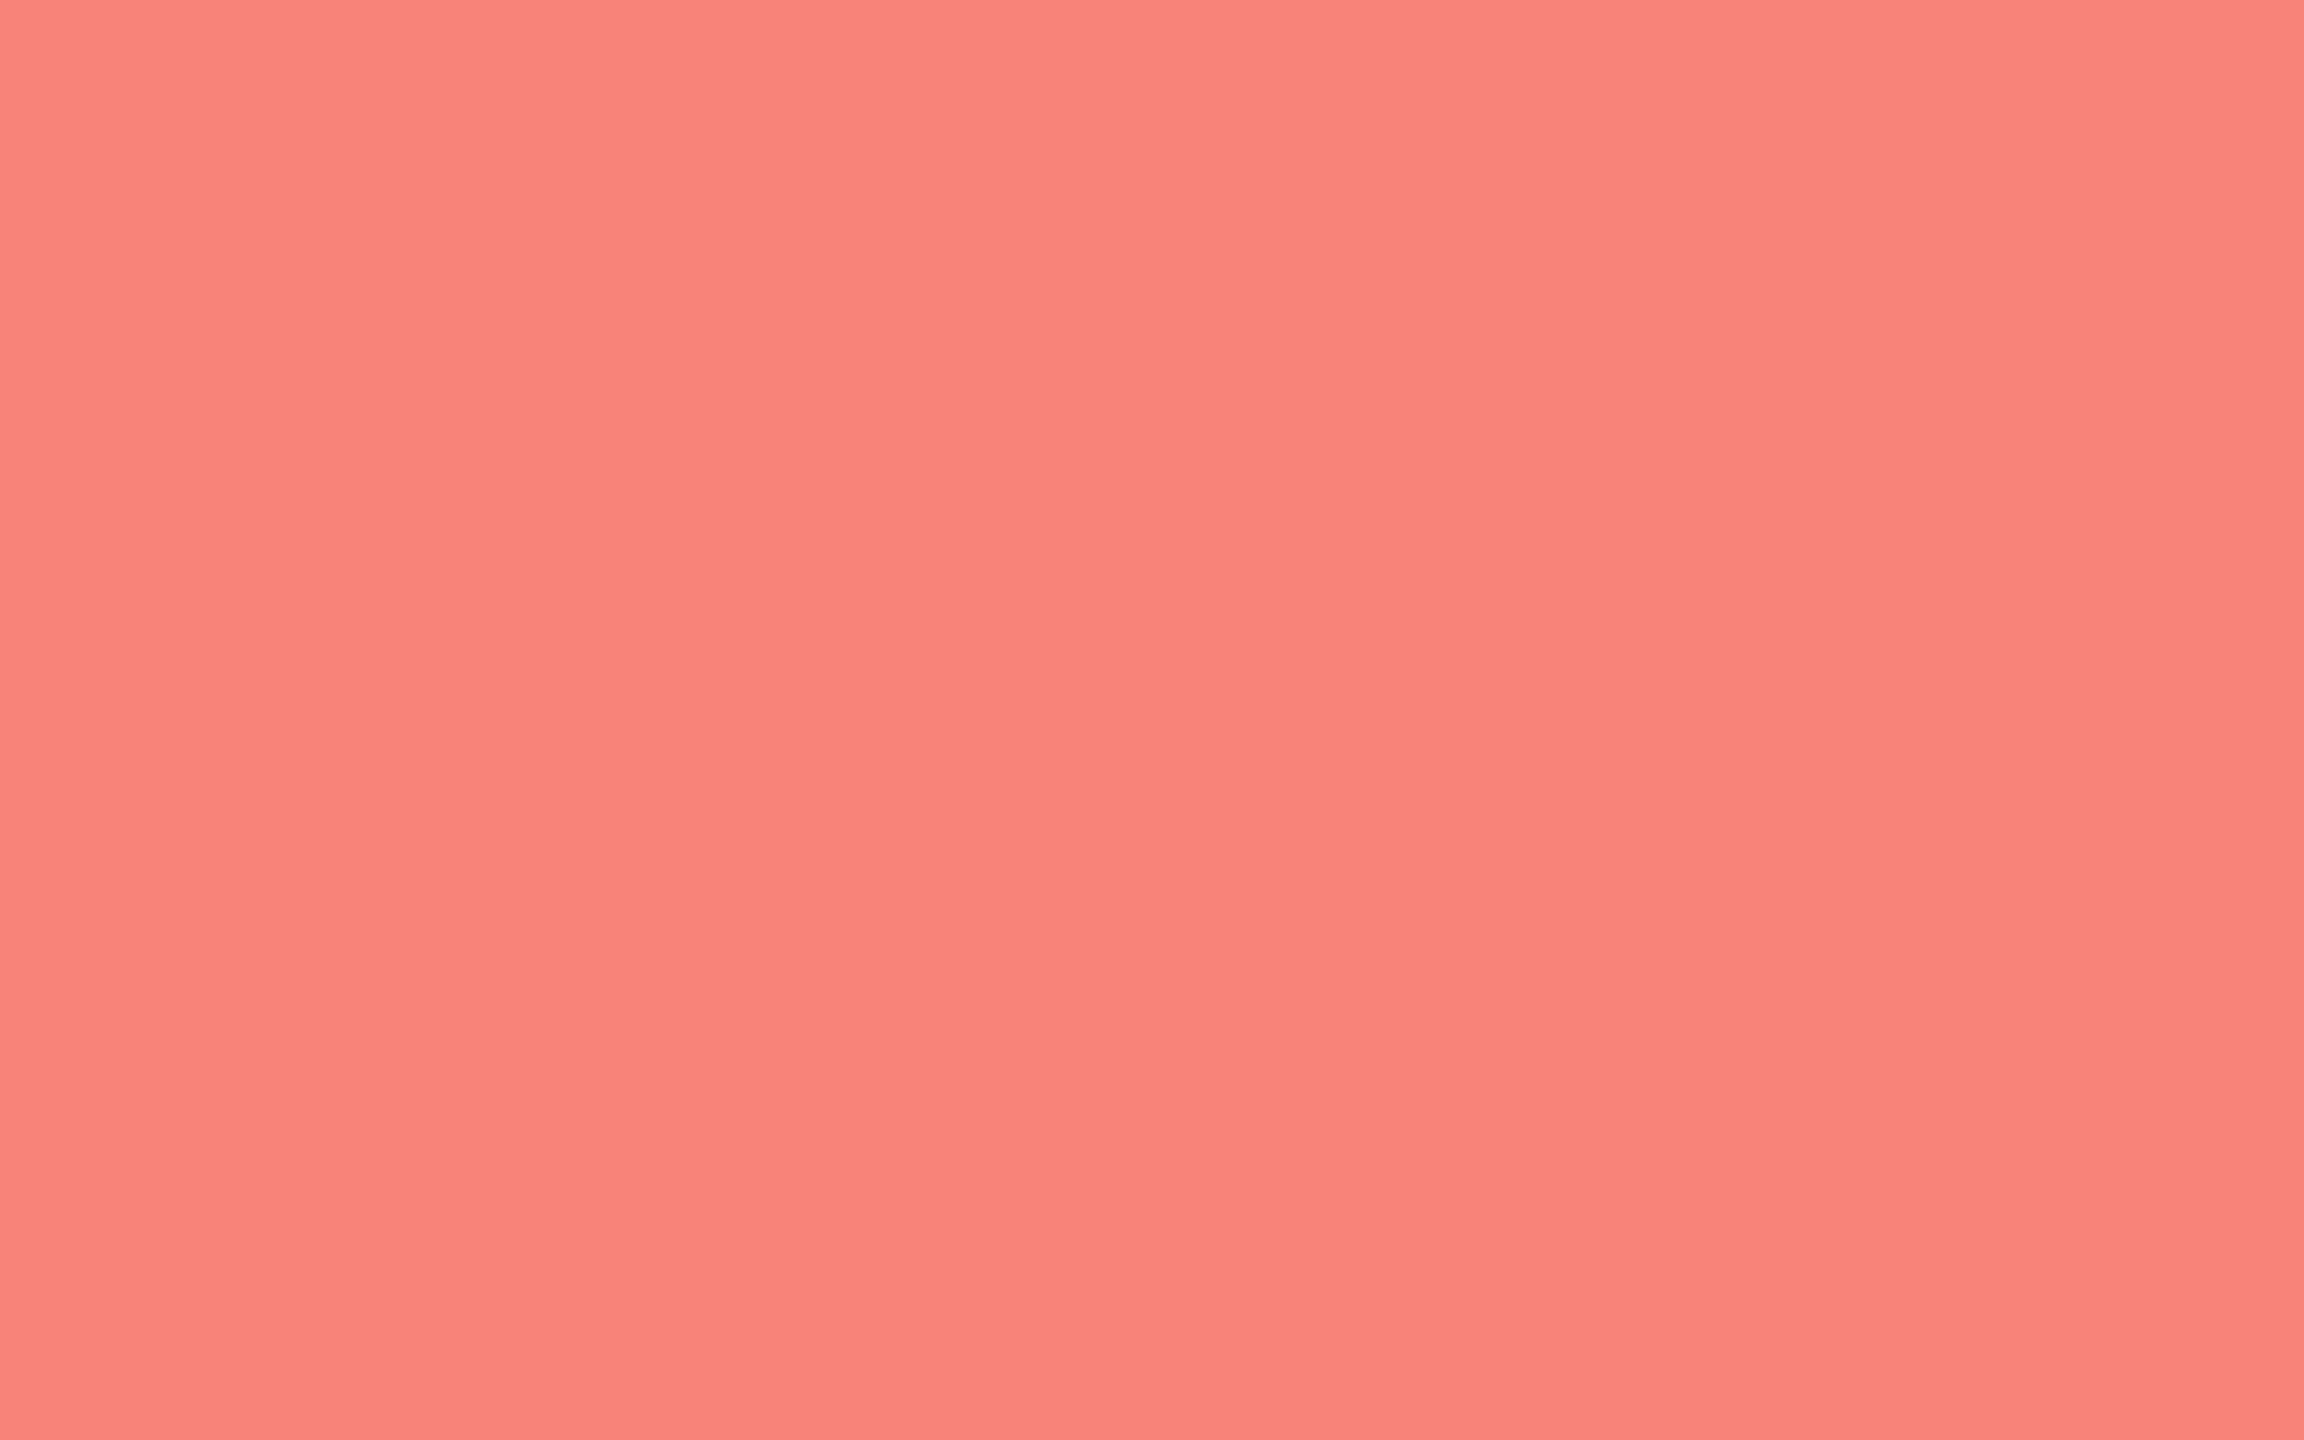 2304x1440 Congo Pink Solid Color Background